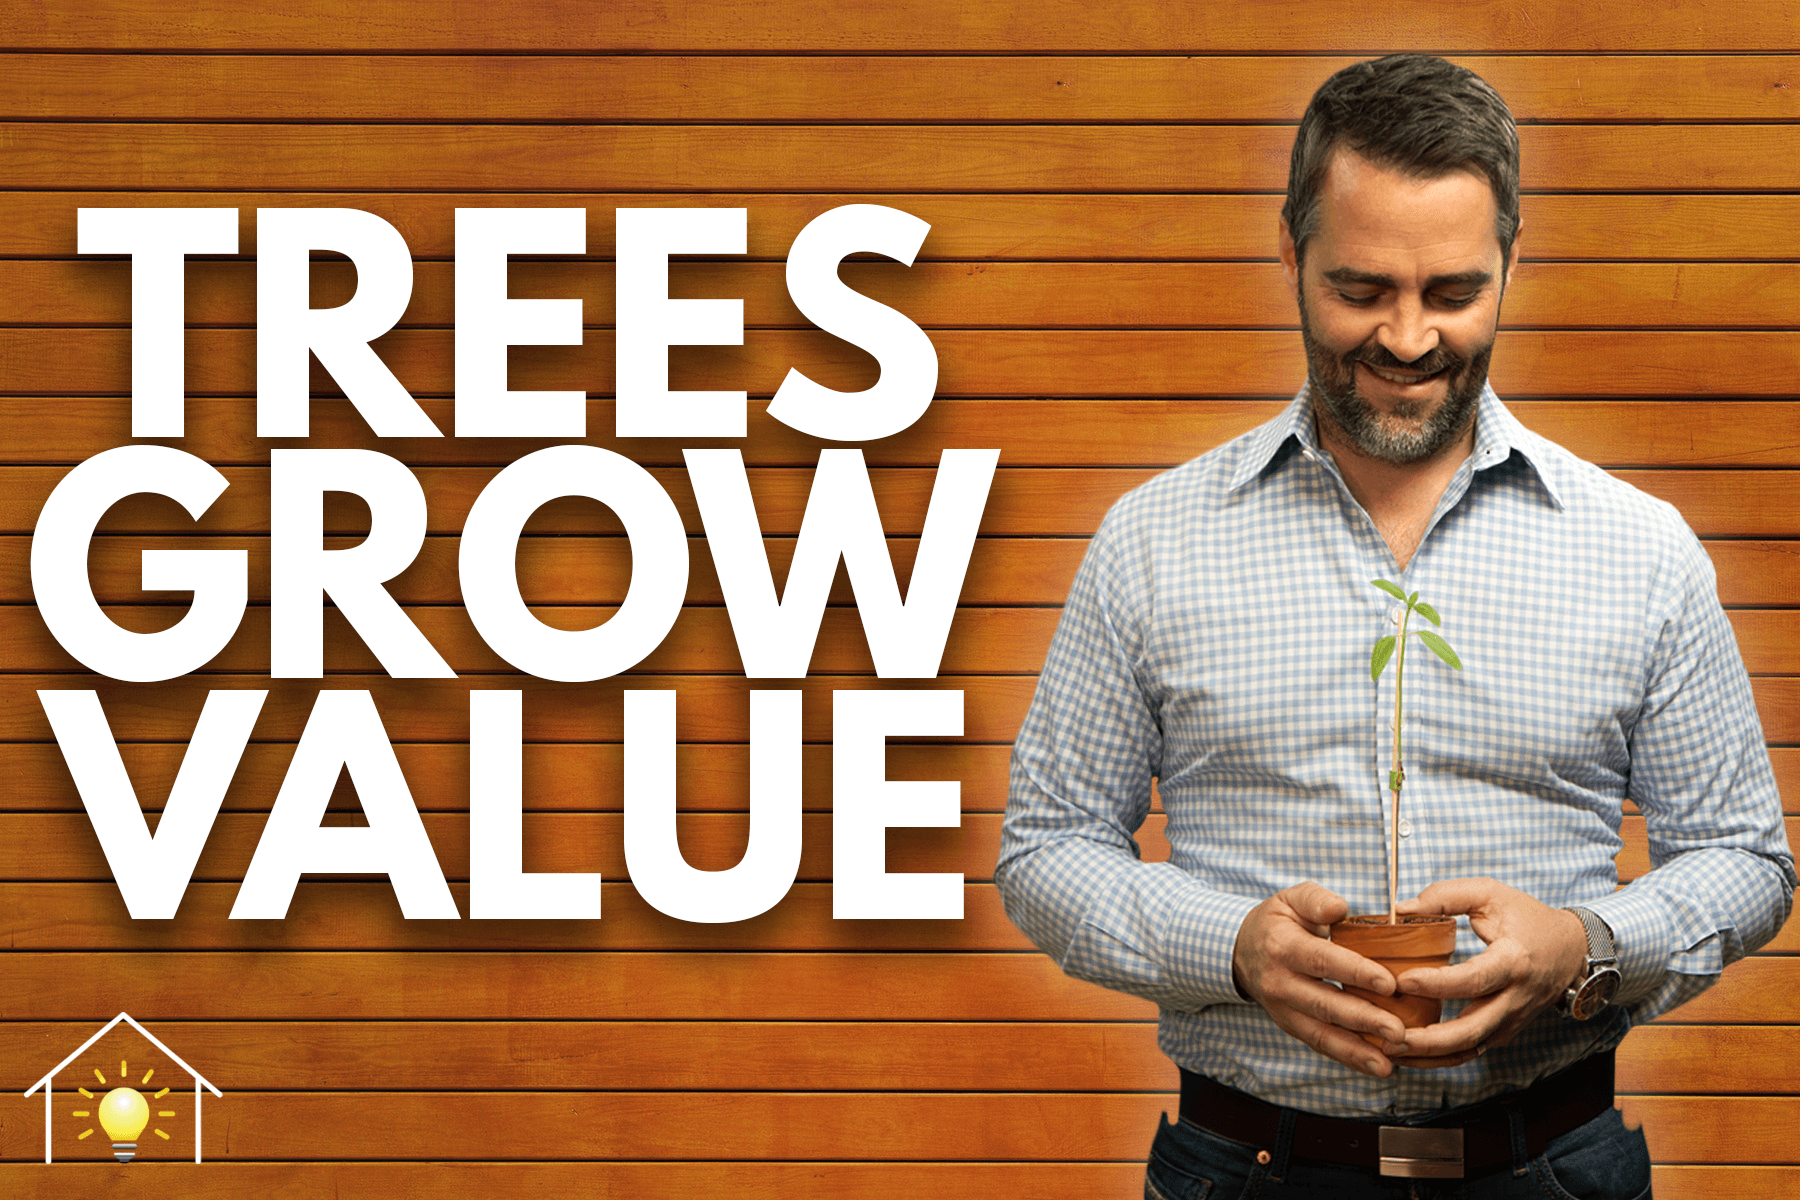 How Trees Grow Value